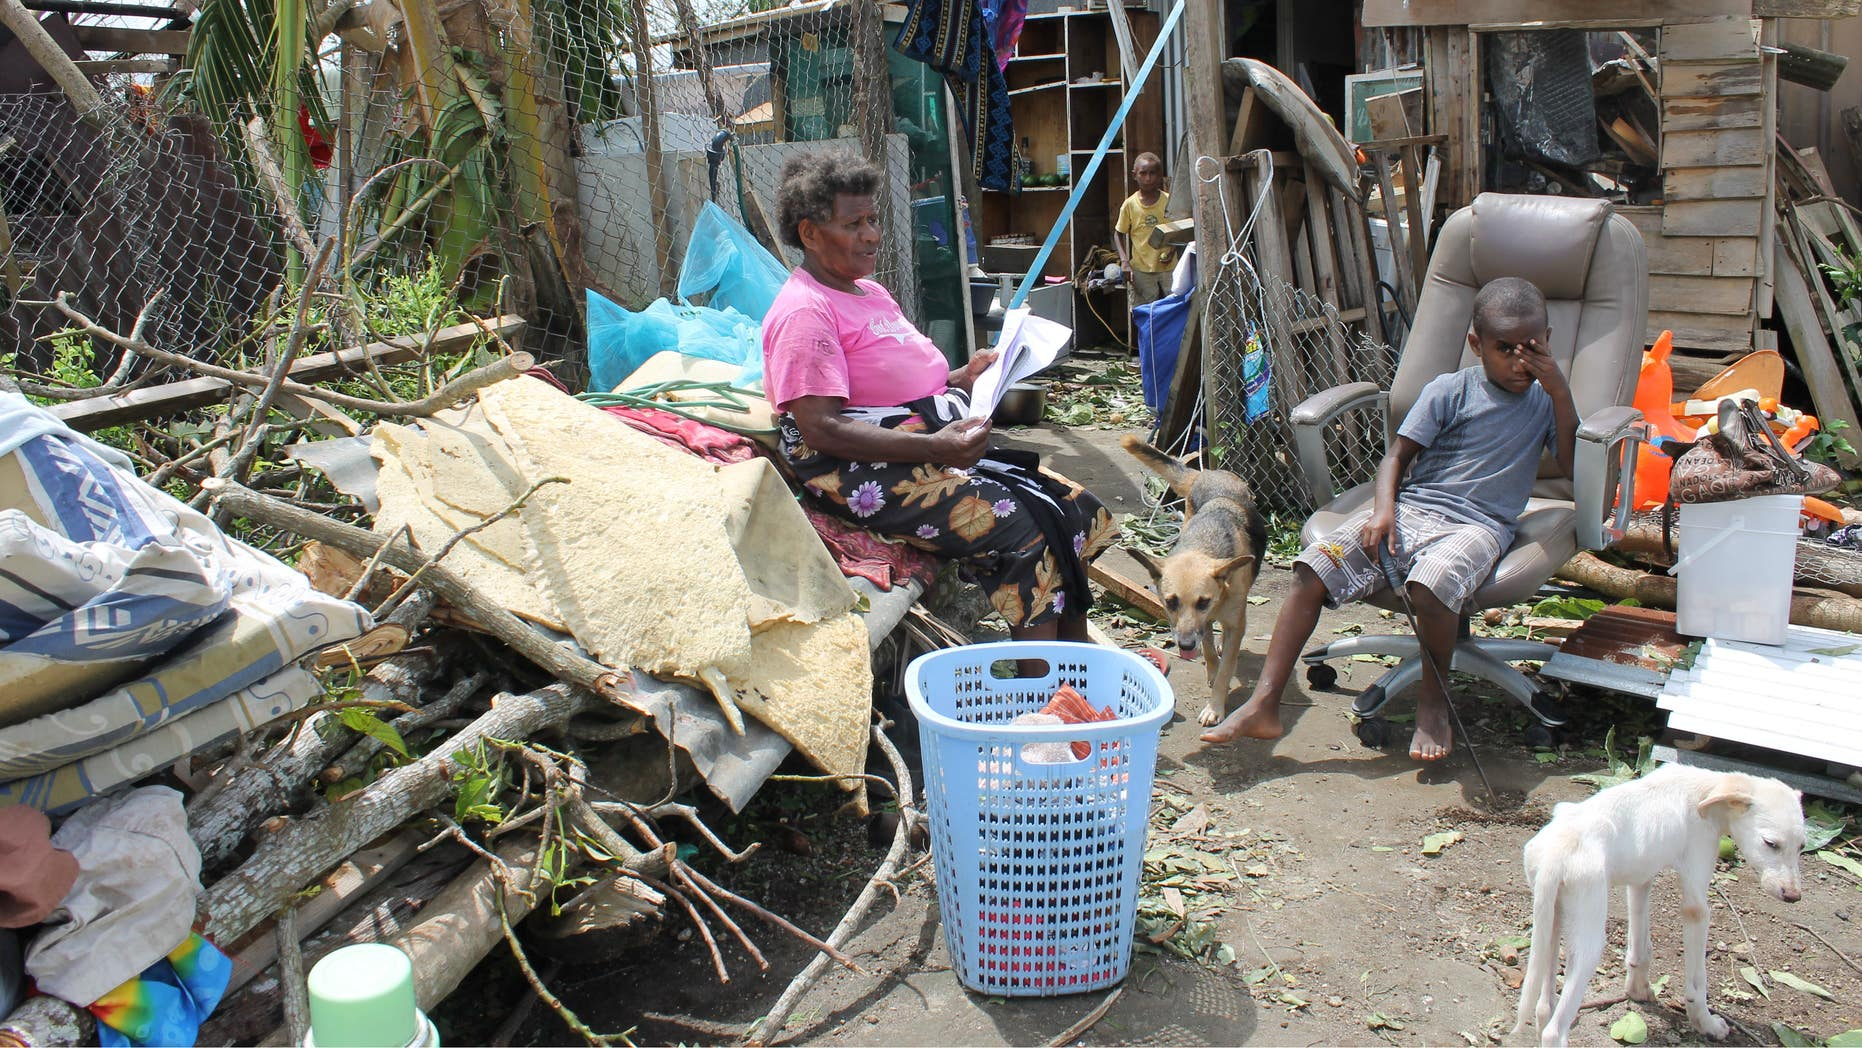 March 17, 2015: Family in the Nikinini community sits surrounded by their belongings in the aftermath of Cyclone Pam.